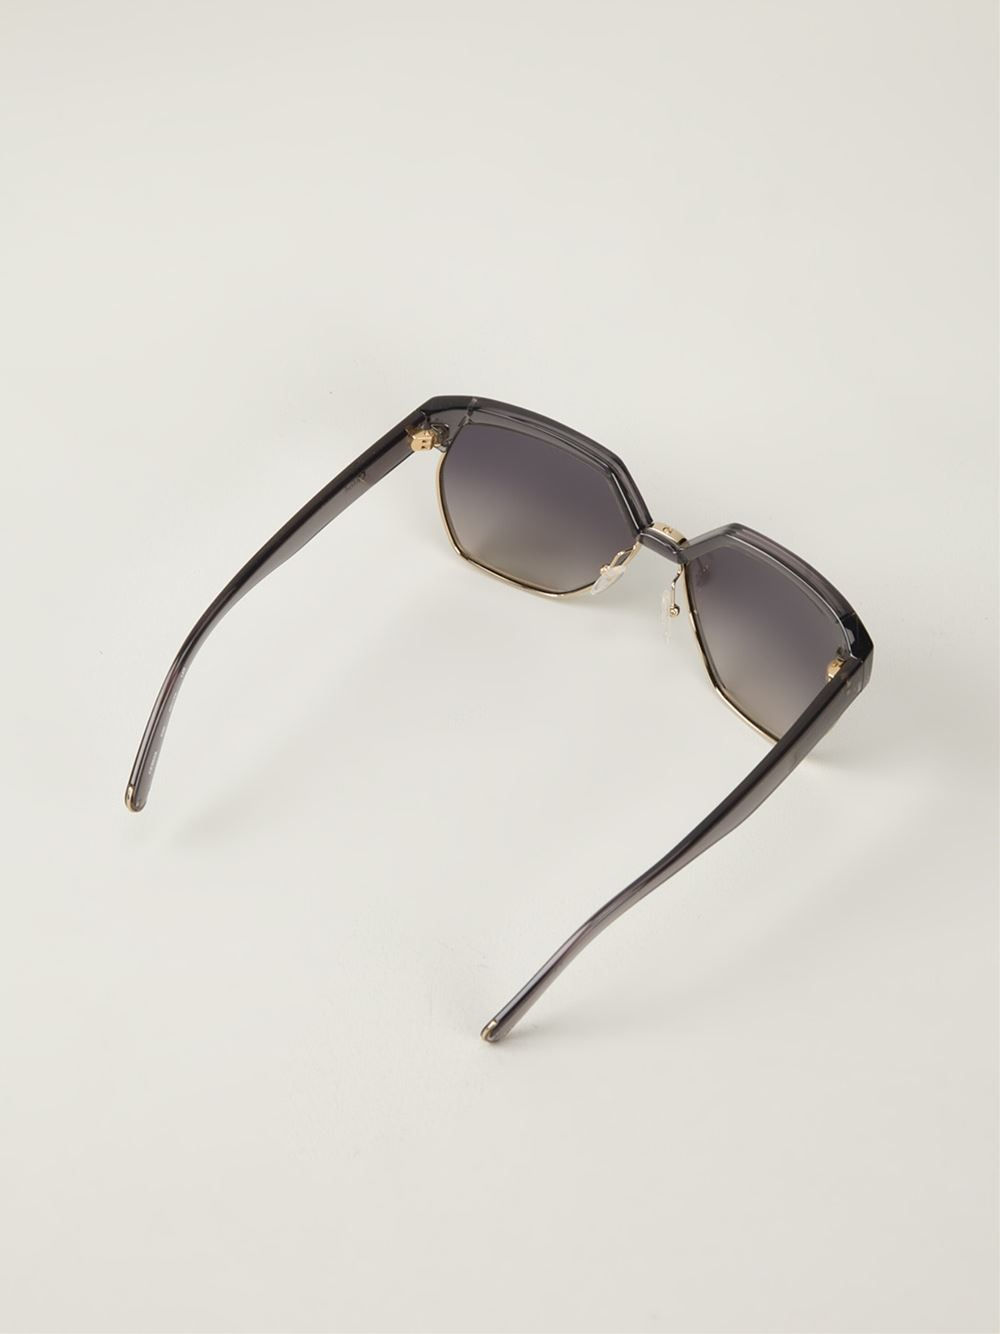 Chloé 'dafne' Sunglasses in Grey (Grey)